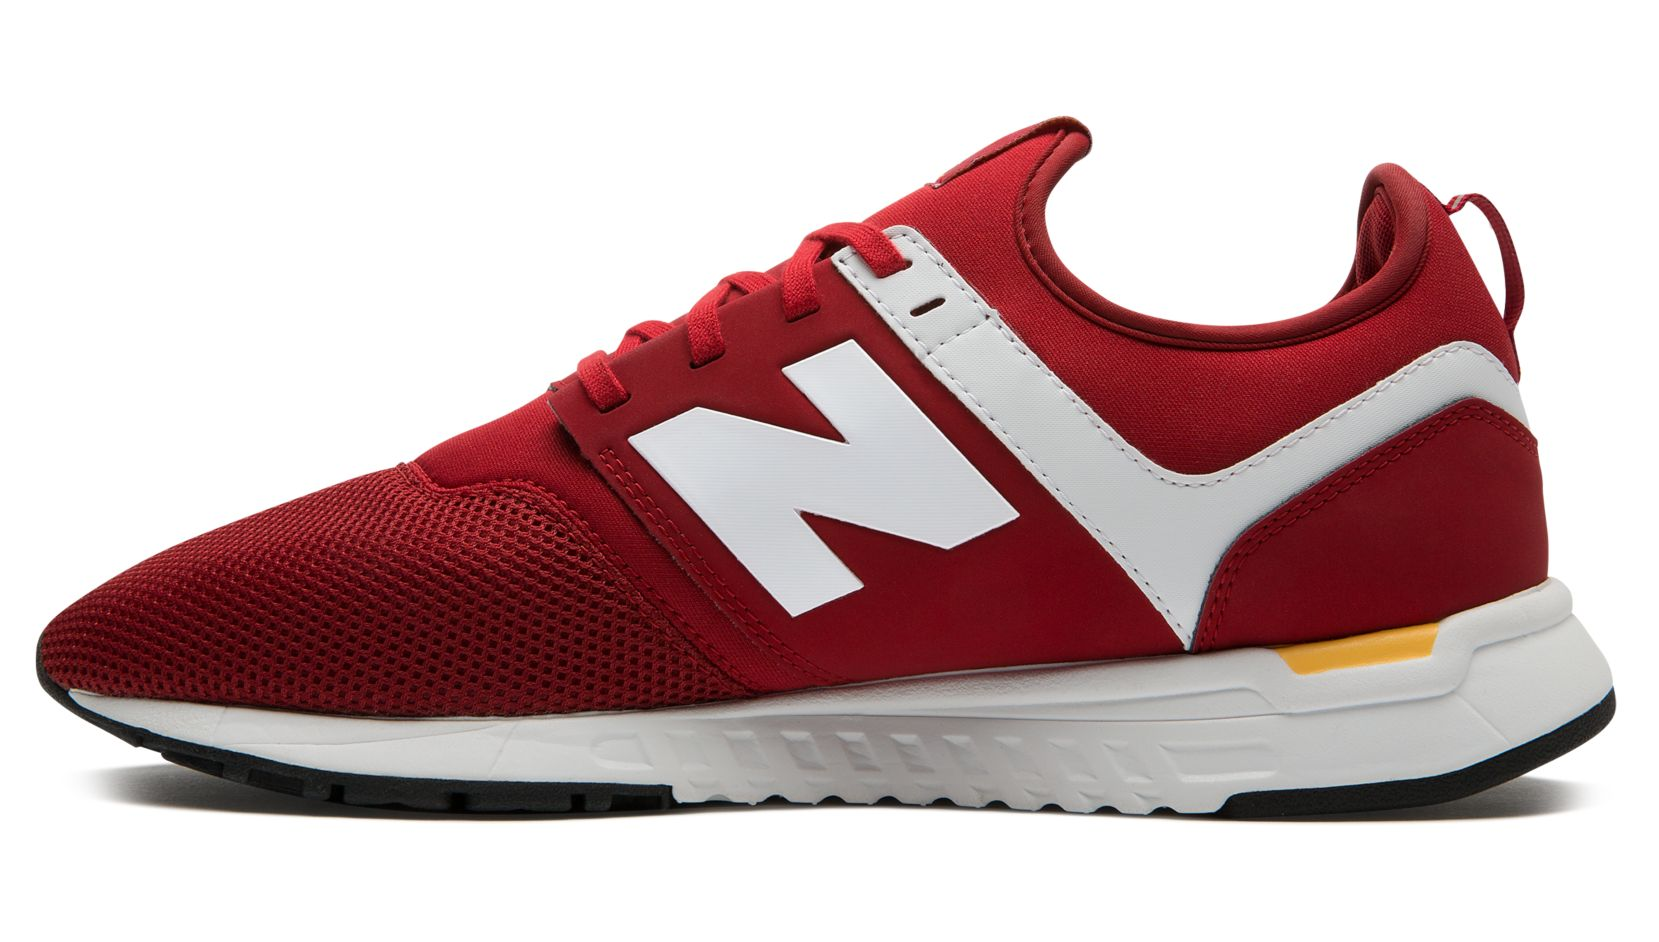 new balance present the '247 lfc' shoe